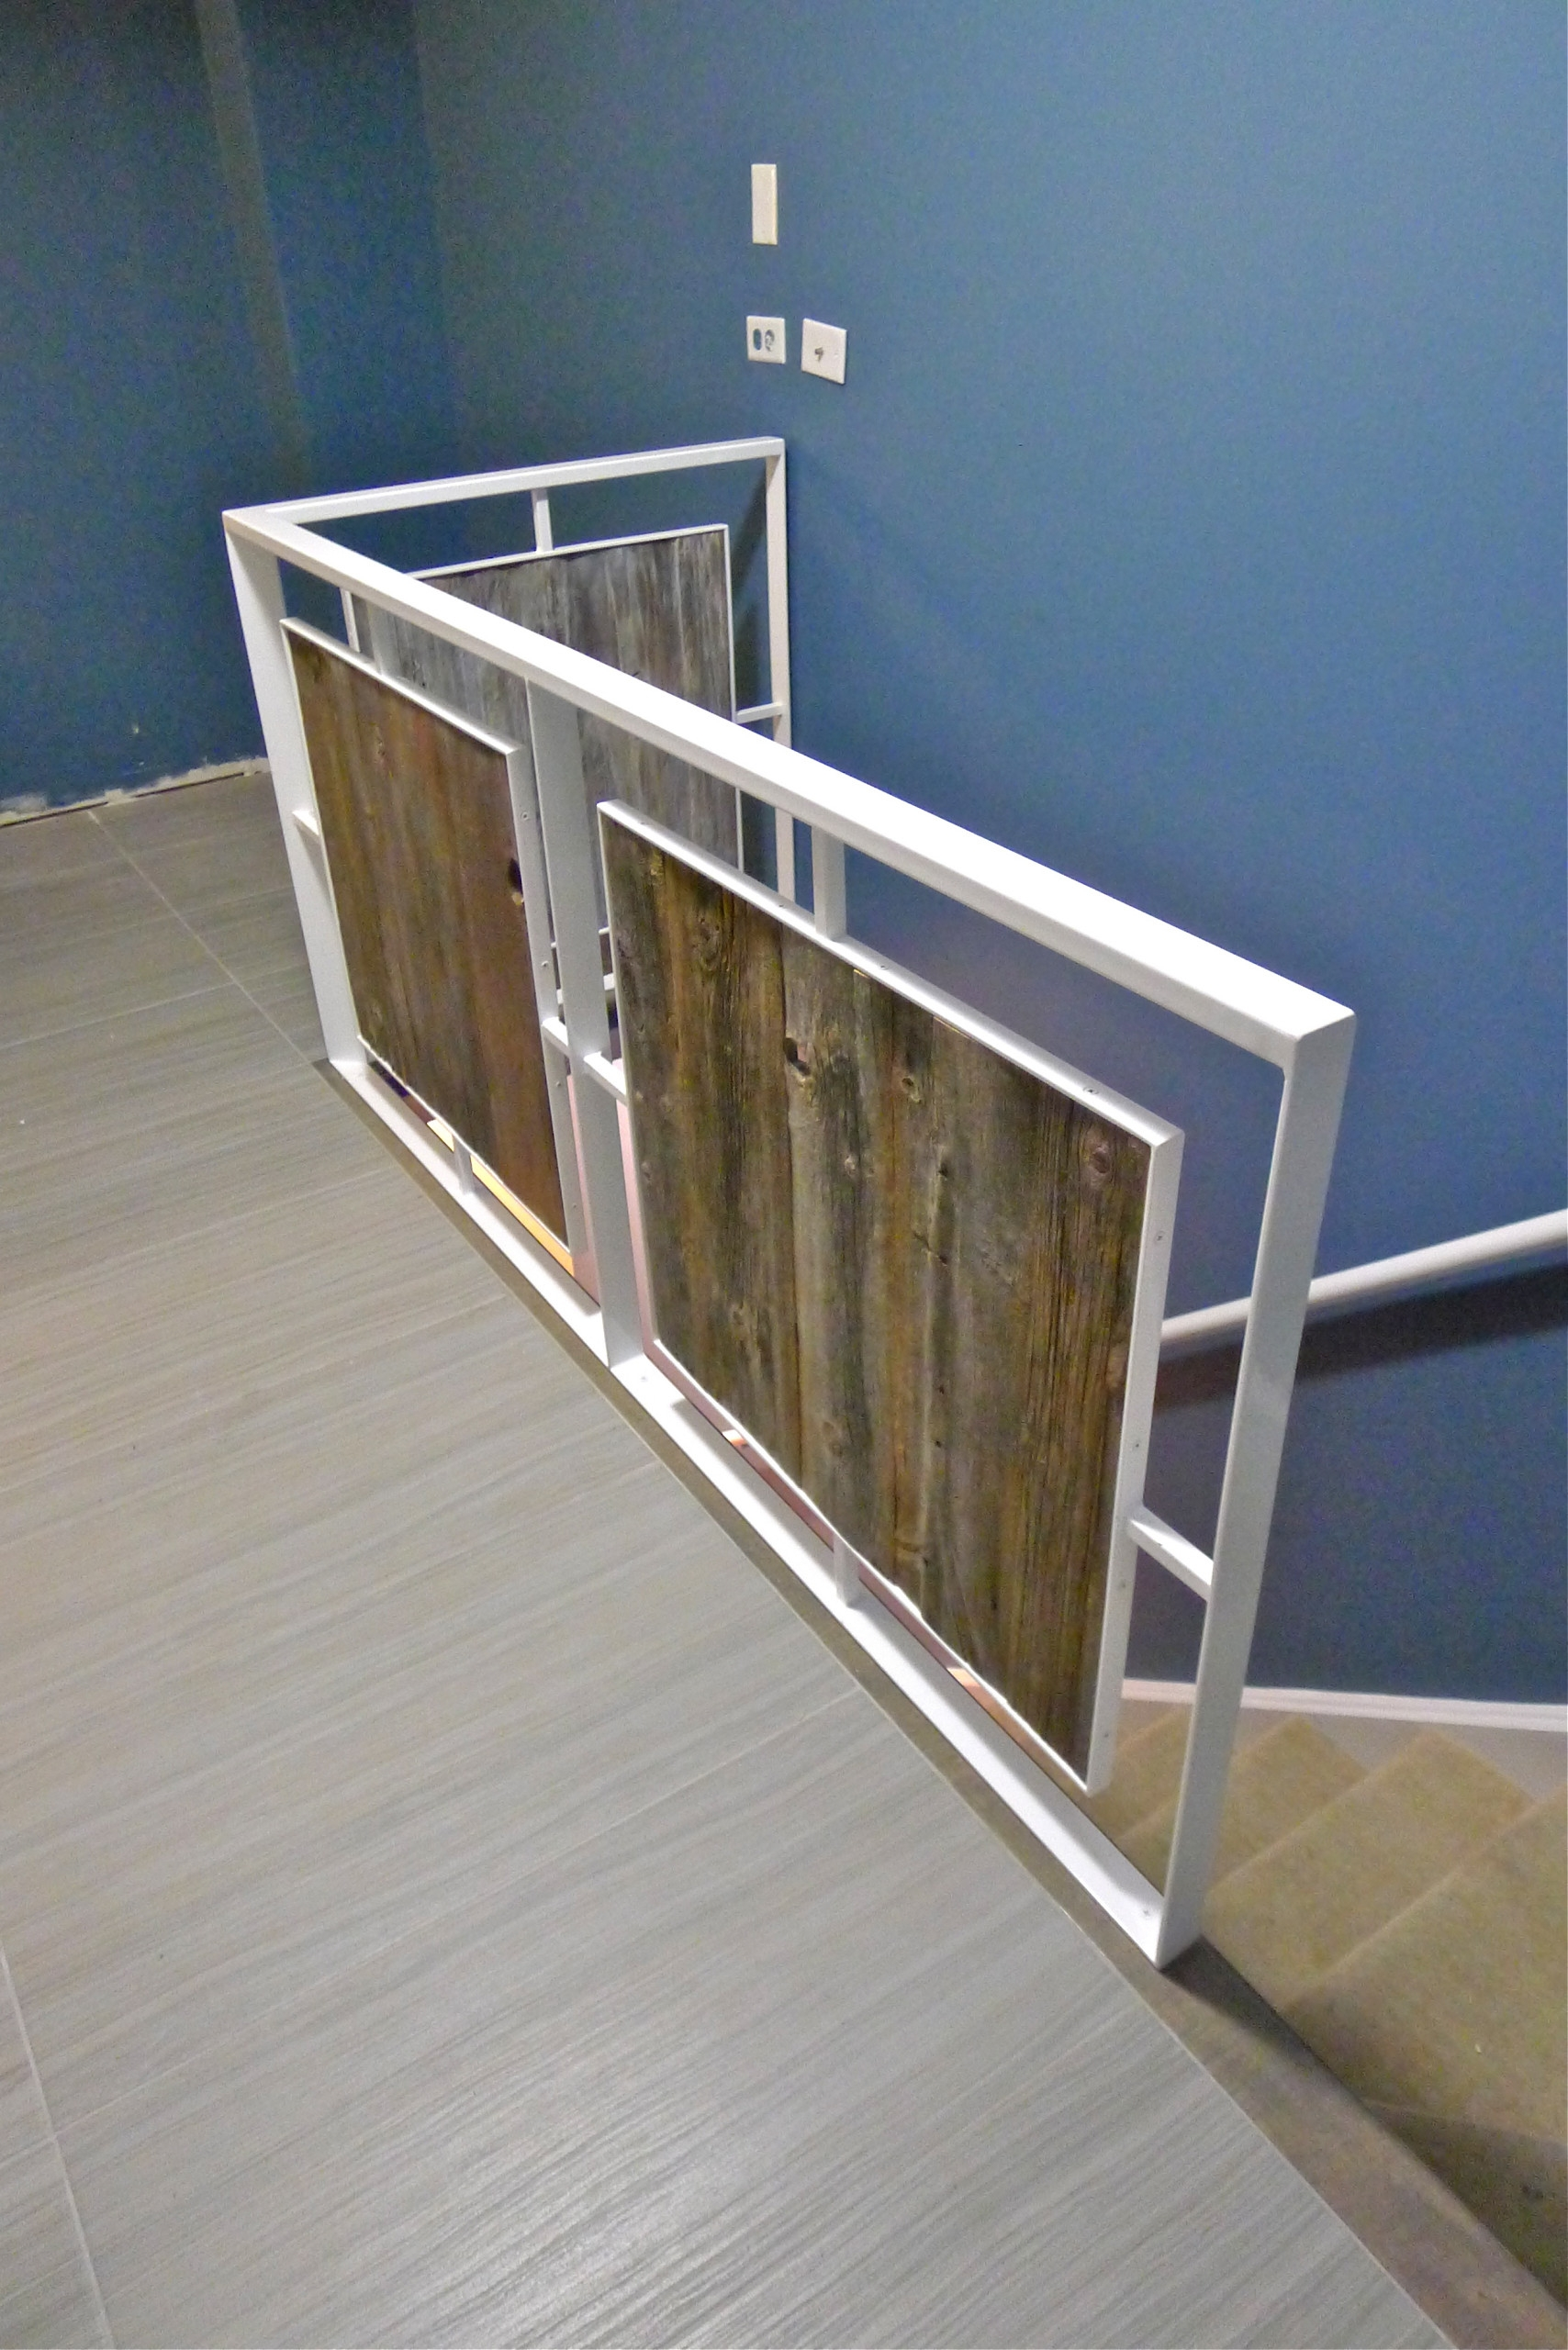 Steel Wood Stair Houzz | Steel And Wood Staircase | Glass | Custom | Handrail | Contemporary | Inside